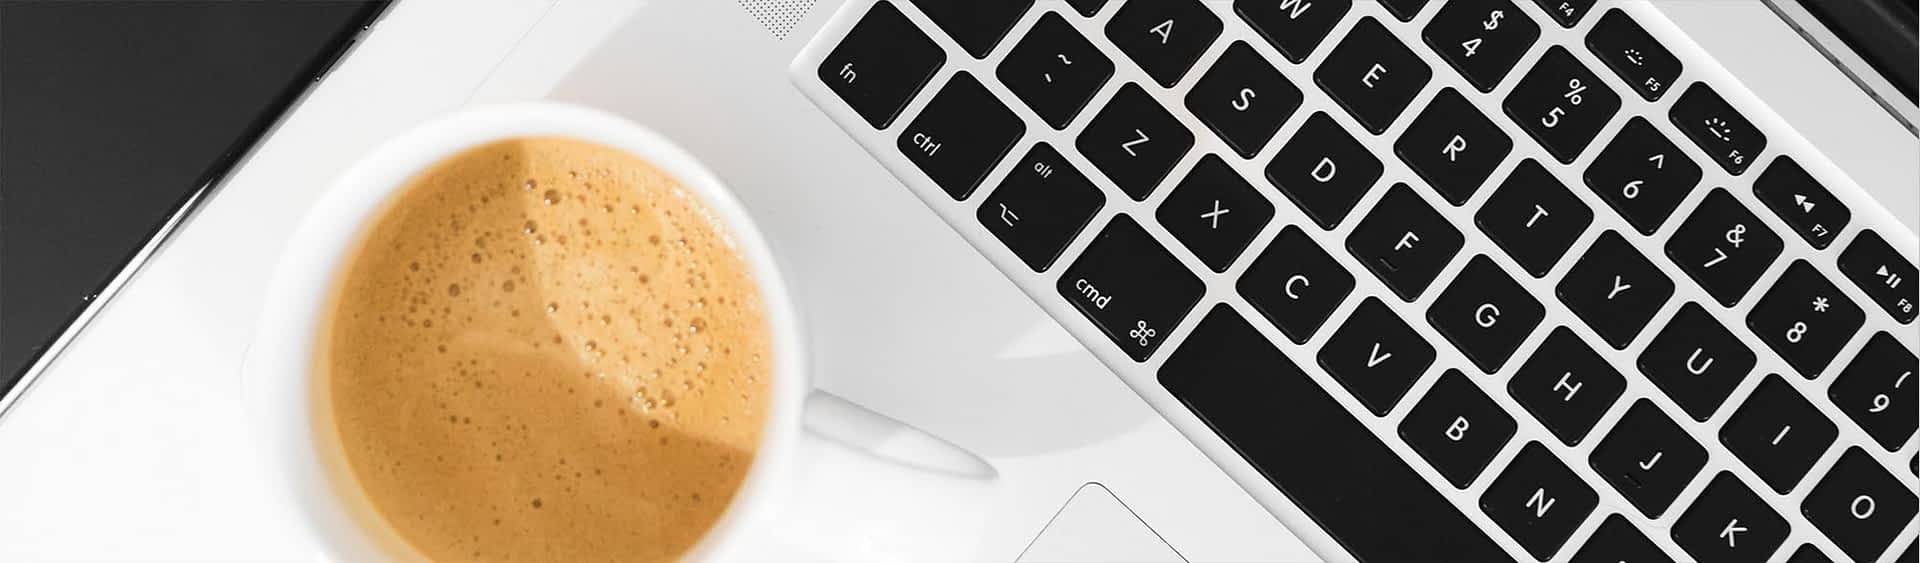 wordpress-underviser-bred-hvid-coffe-keyboard